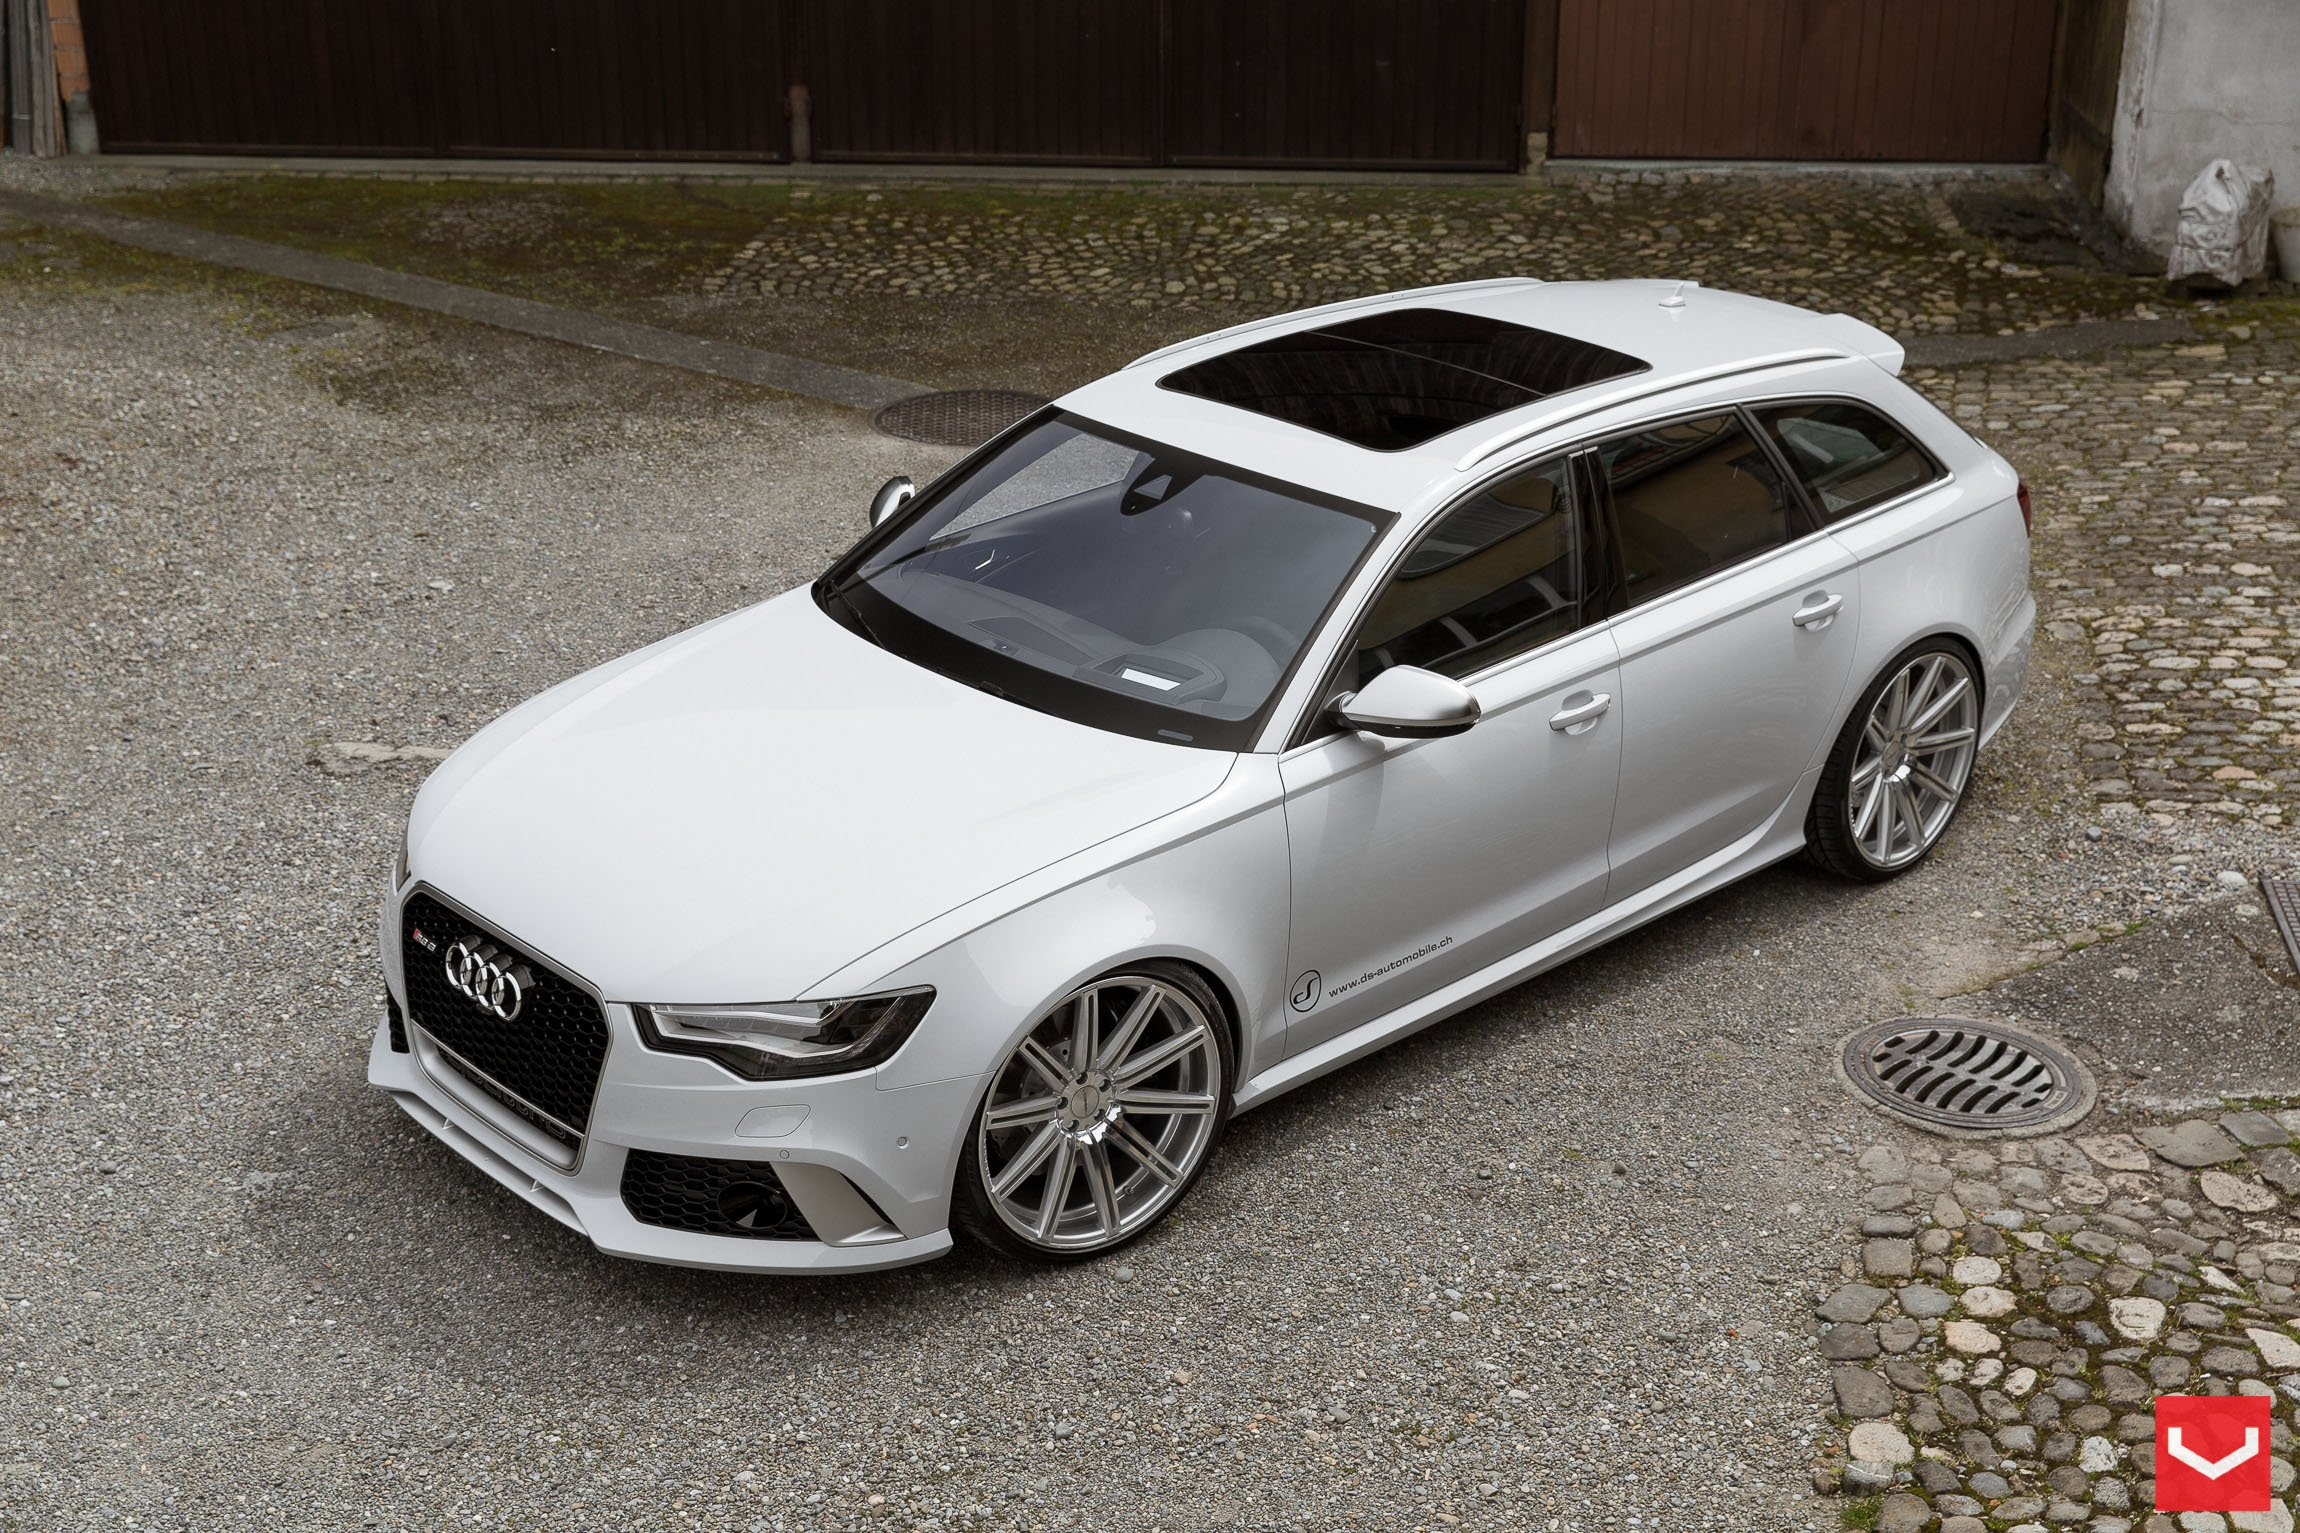 vossen wheels tuning audi rs6 wallpaper 2300x1533 483857 wallpaperup. Black Bedroom Furniture Sets. Home Design Ideas